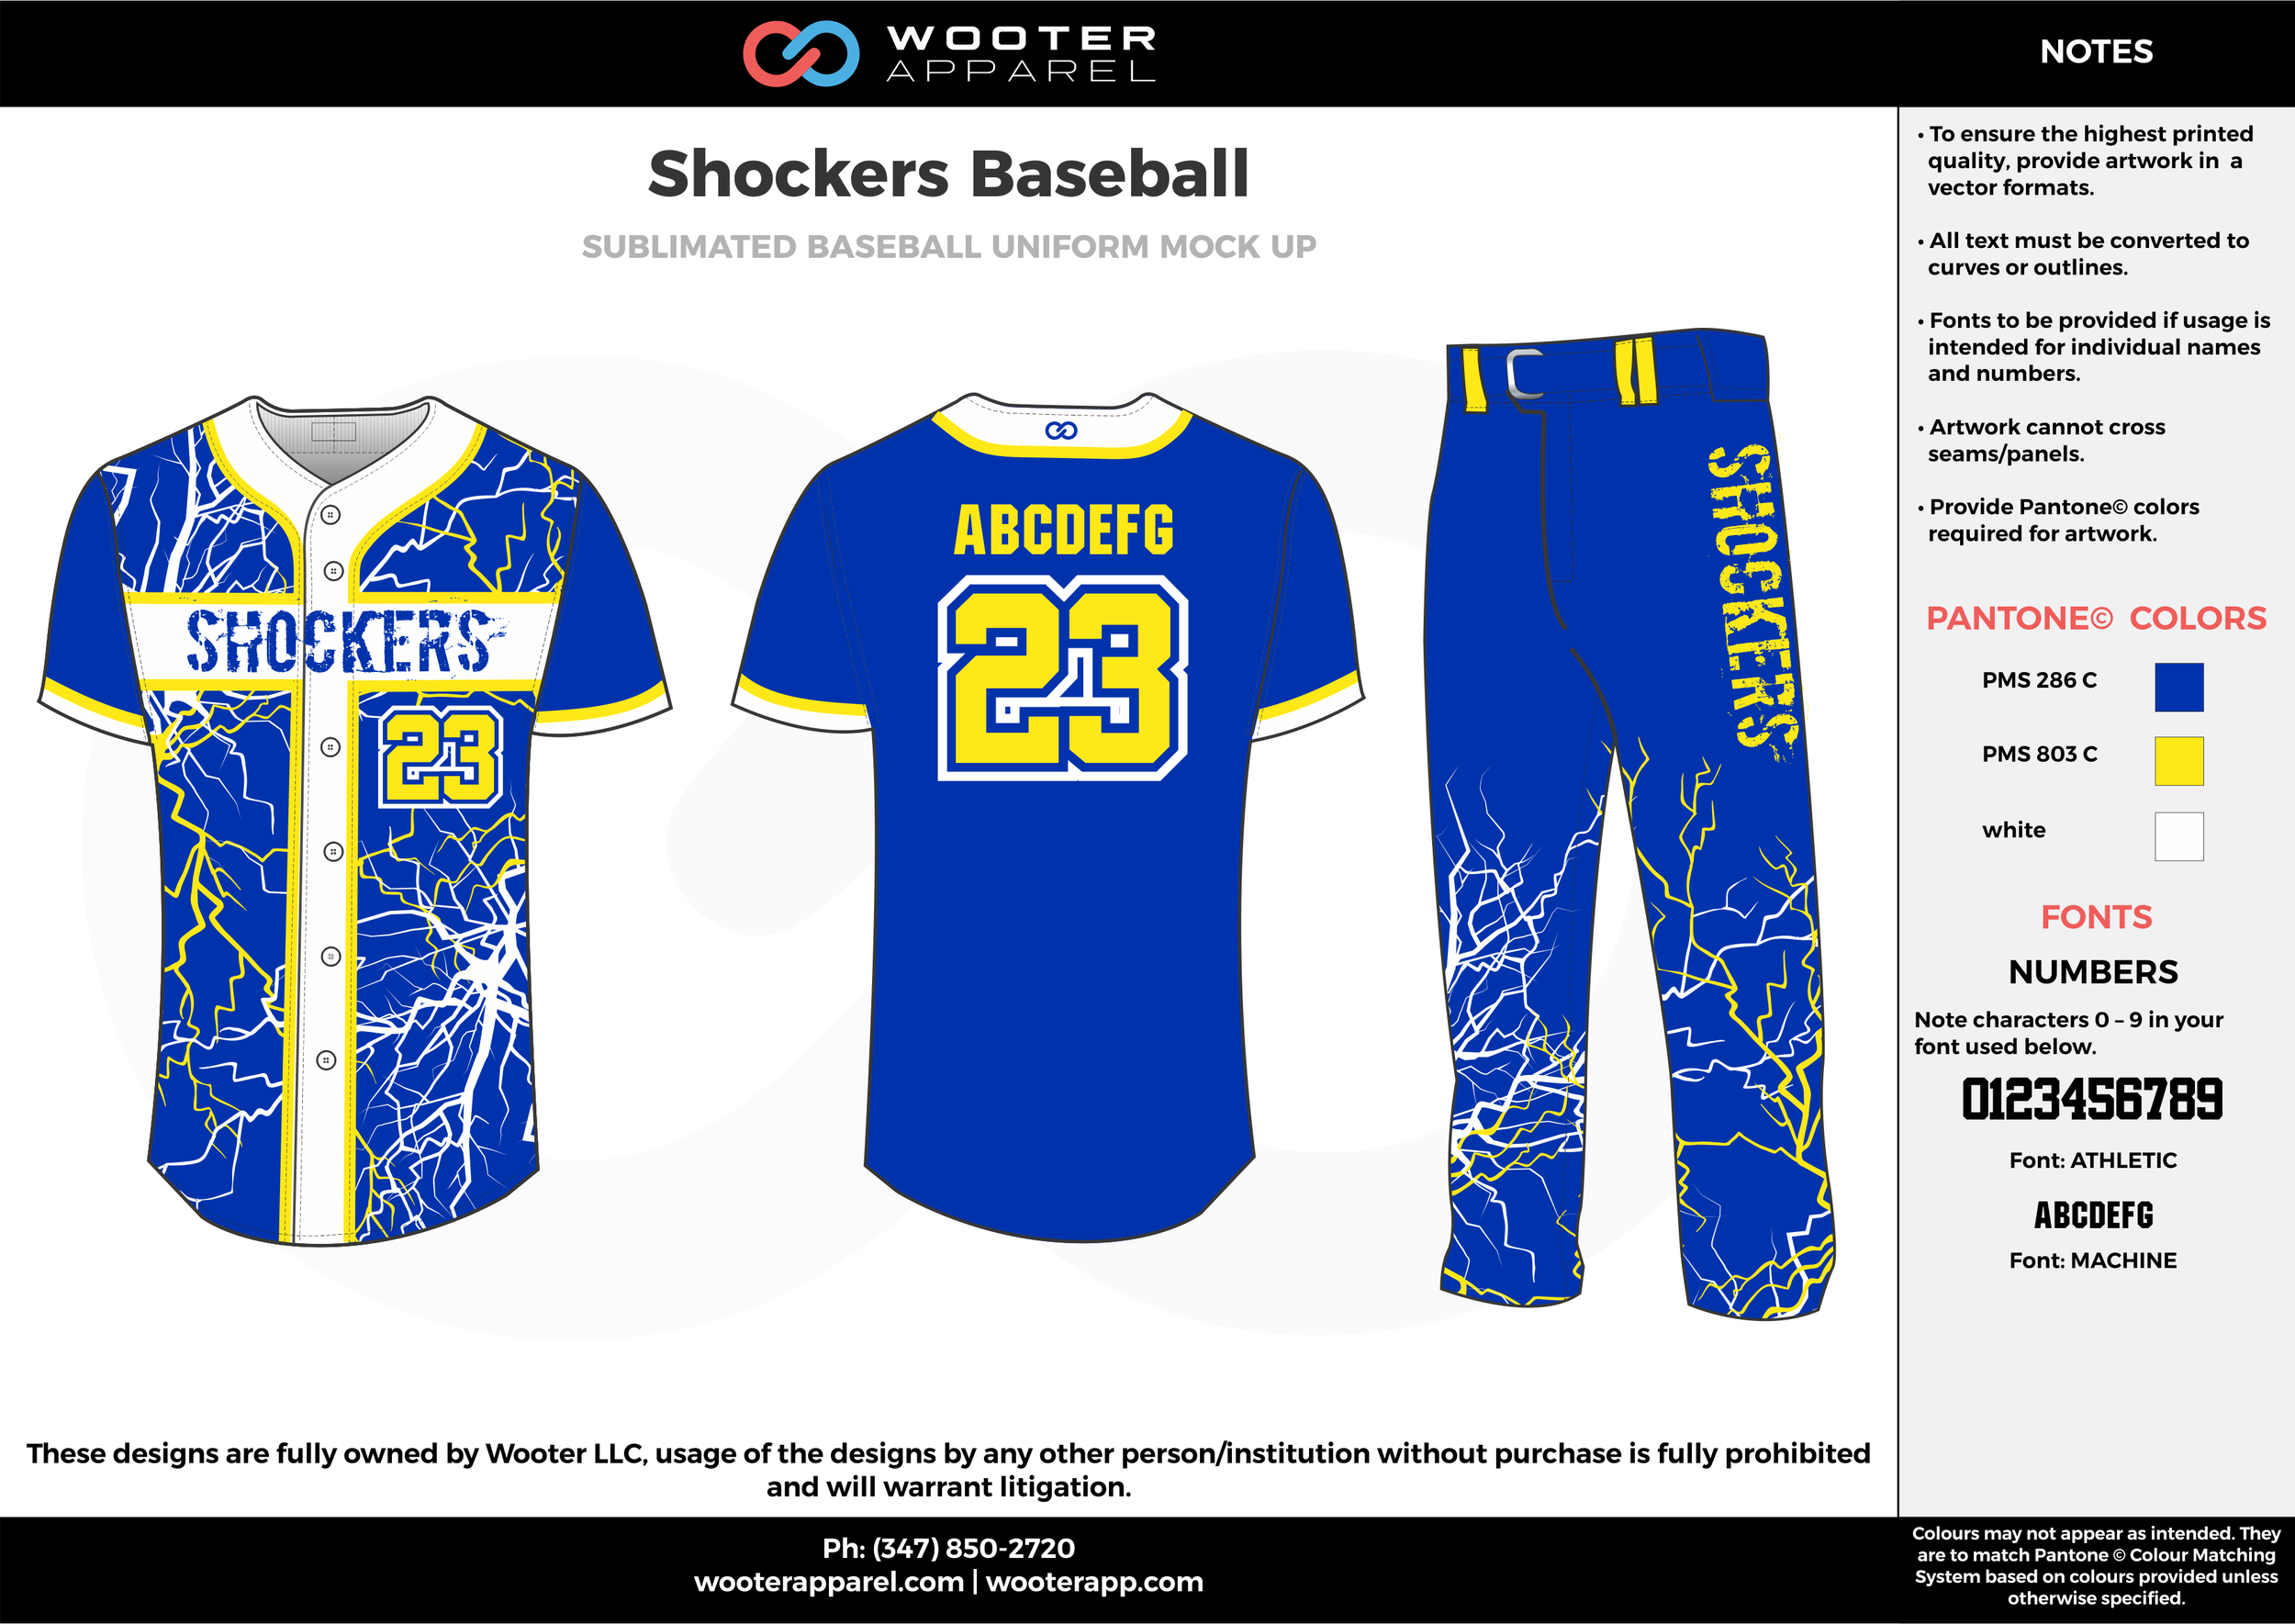 SHOCKERS BASEBALL blue yellow white baseball uniforms jerseys pants